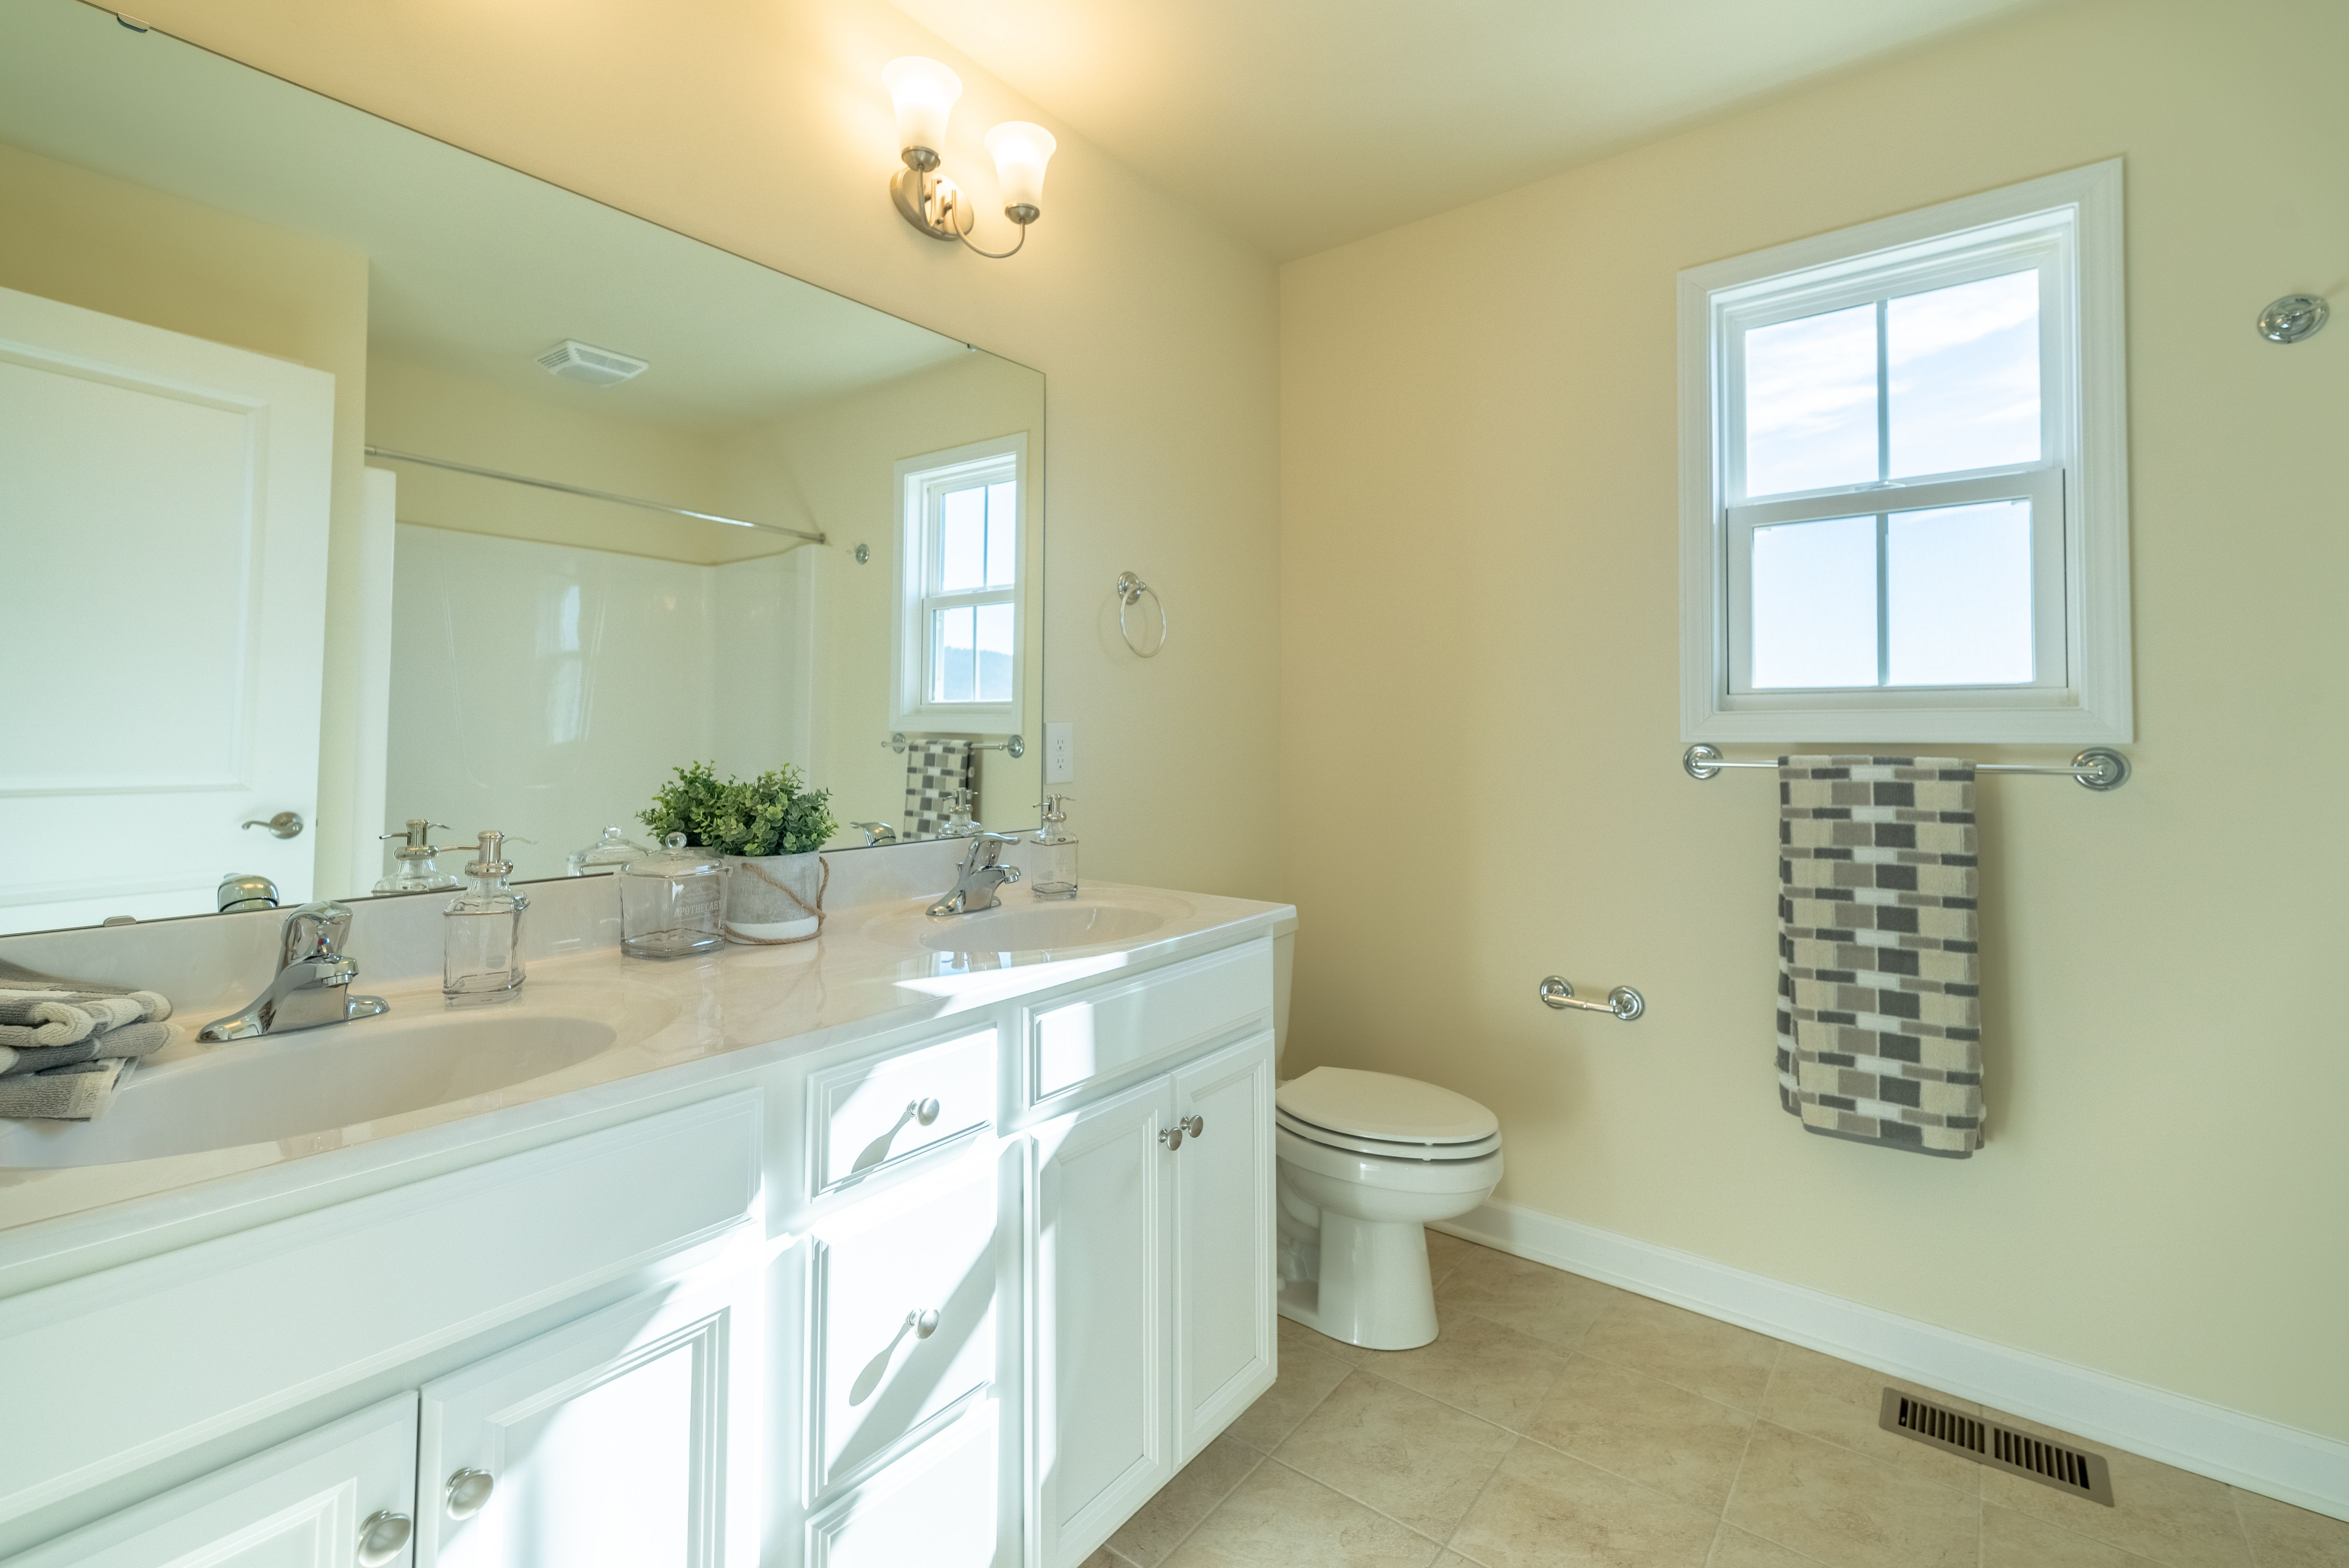 Bathroom featured in The Stafford By Stateson Homes in Roanoke, VA